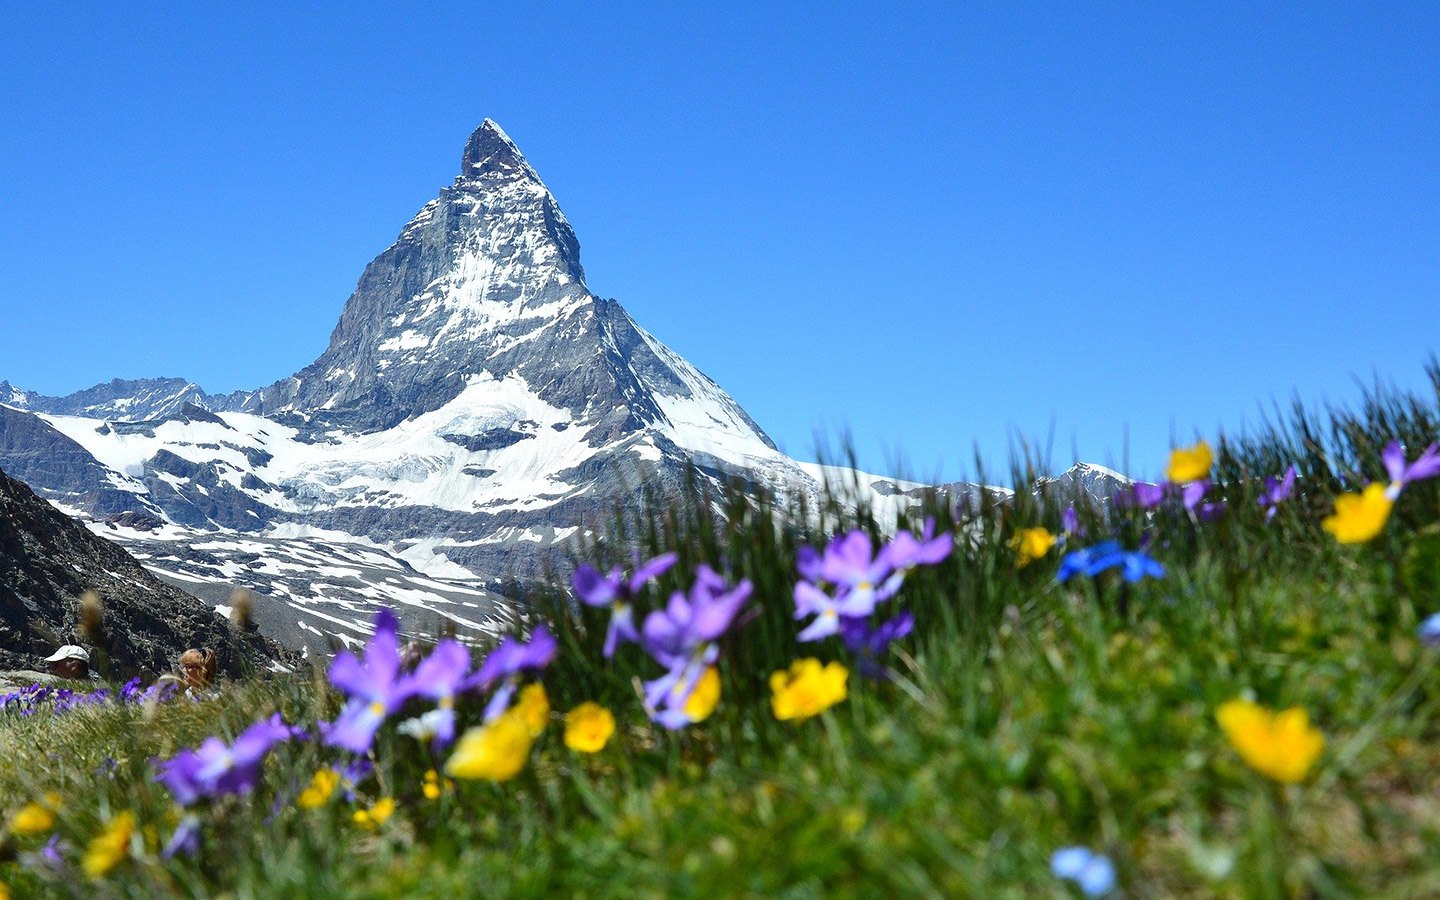 Spring in Zermatt, Switzerland